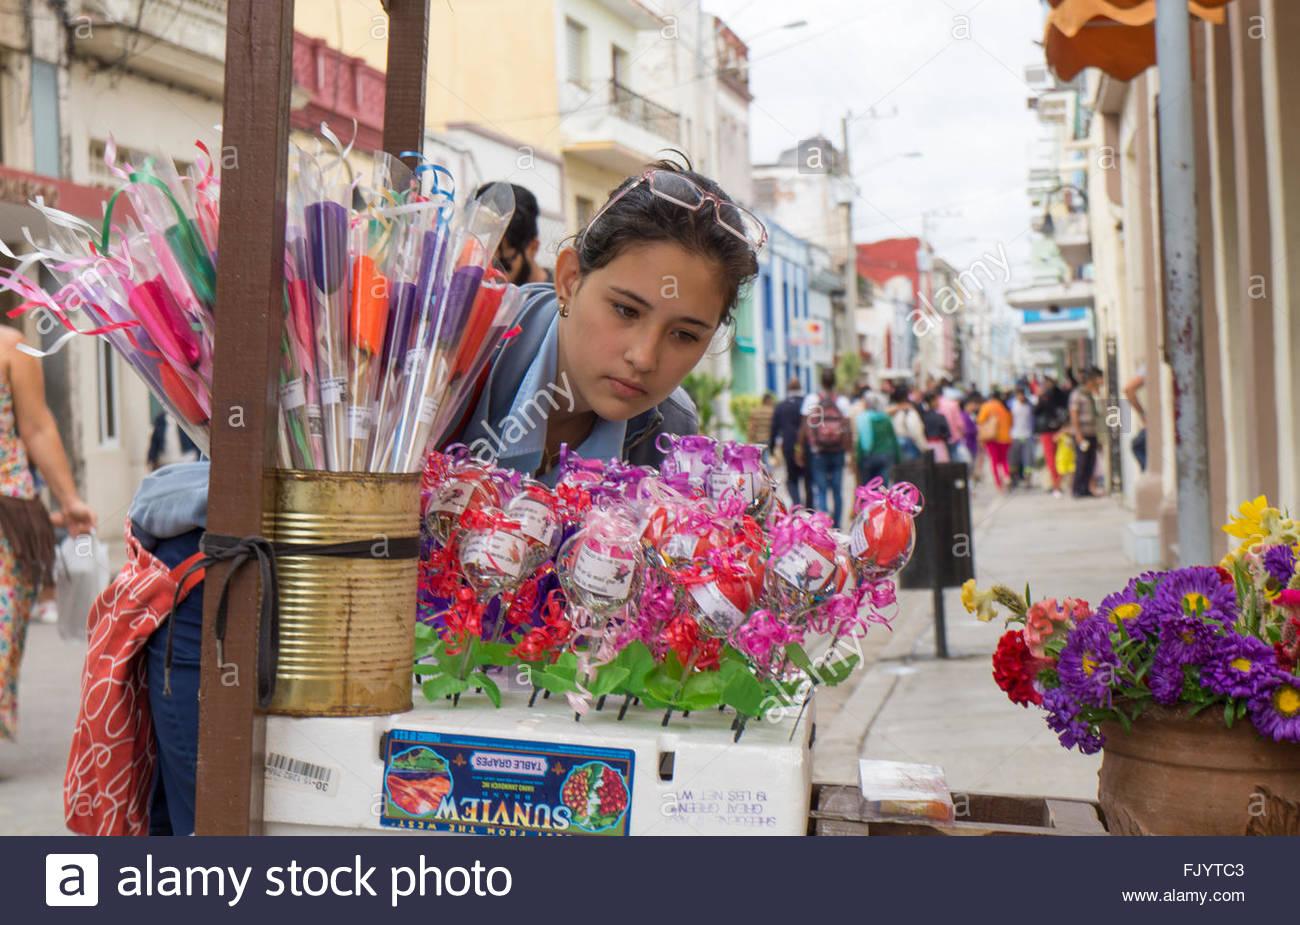 Highschool student picking flowers from a private stand in the boulevard area. - Stock Image